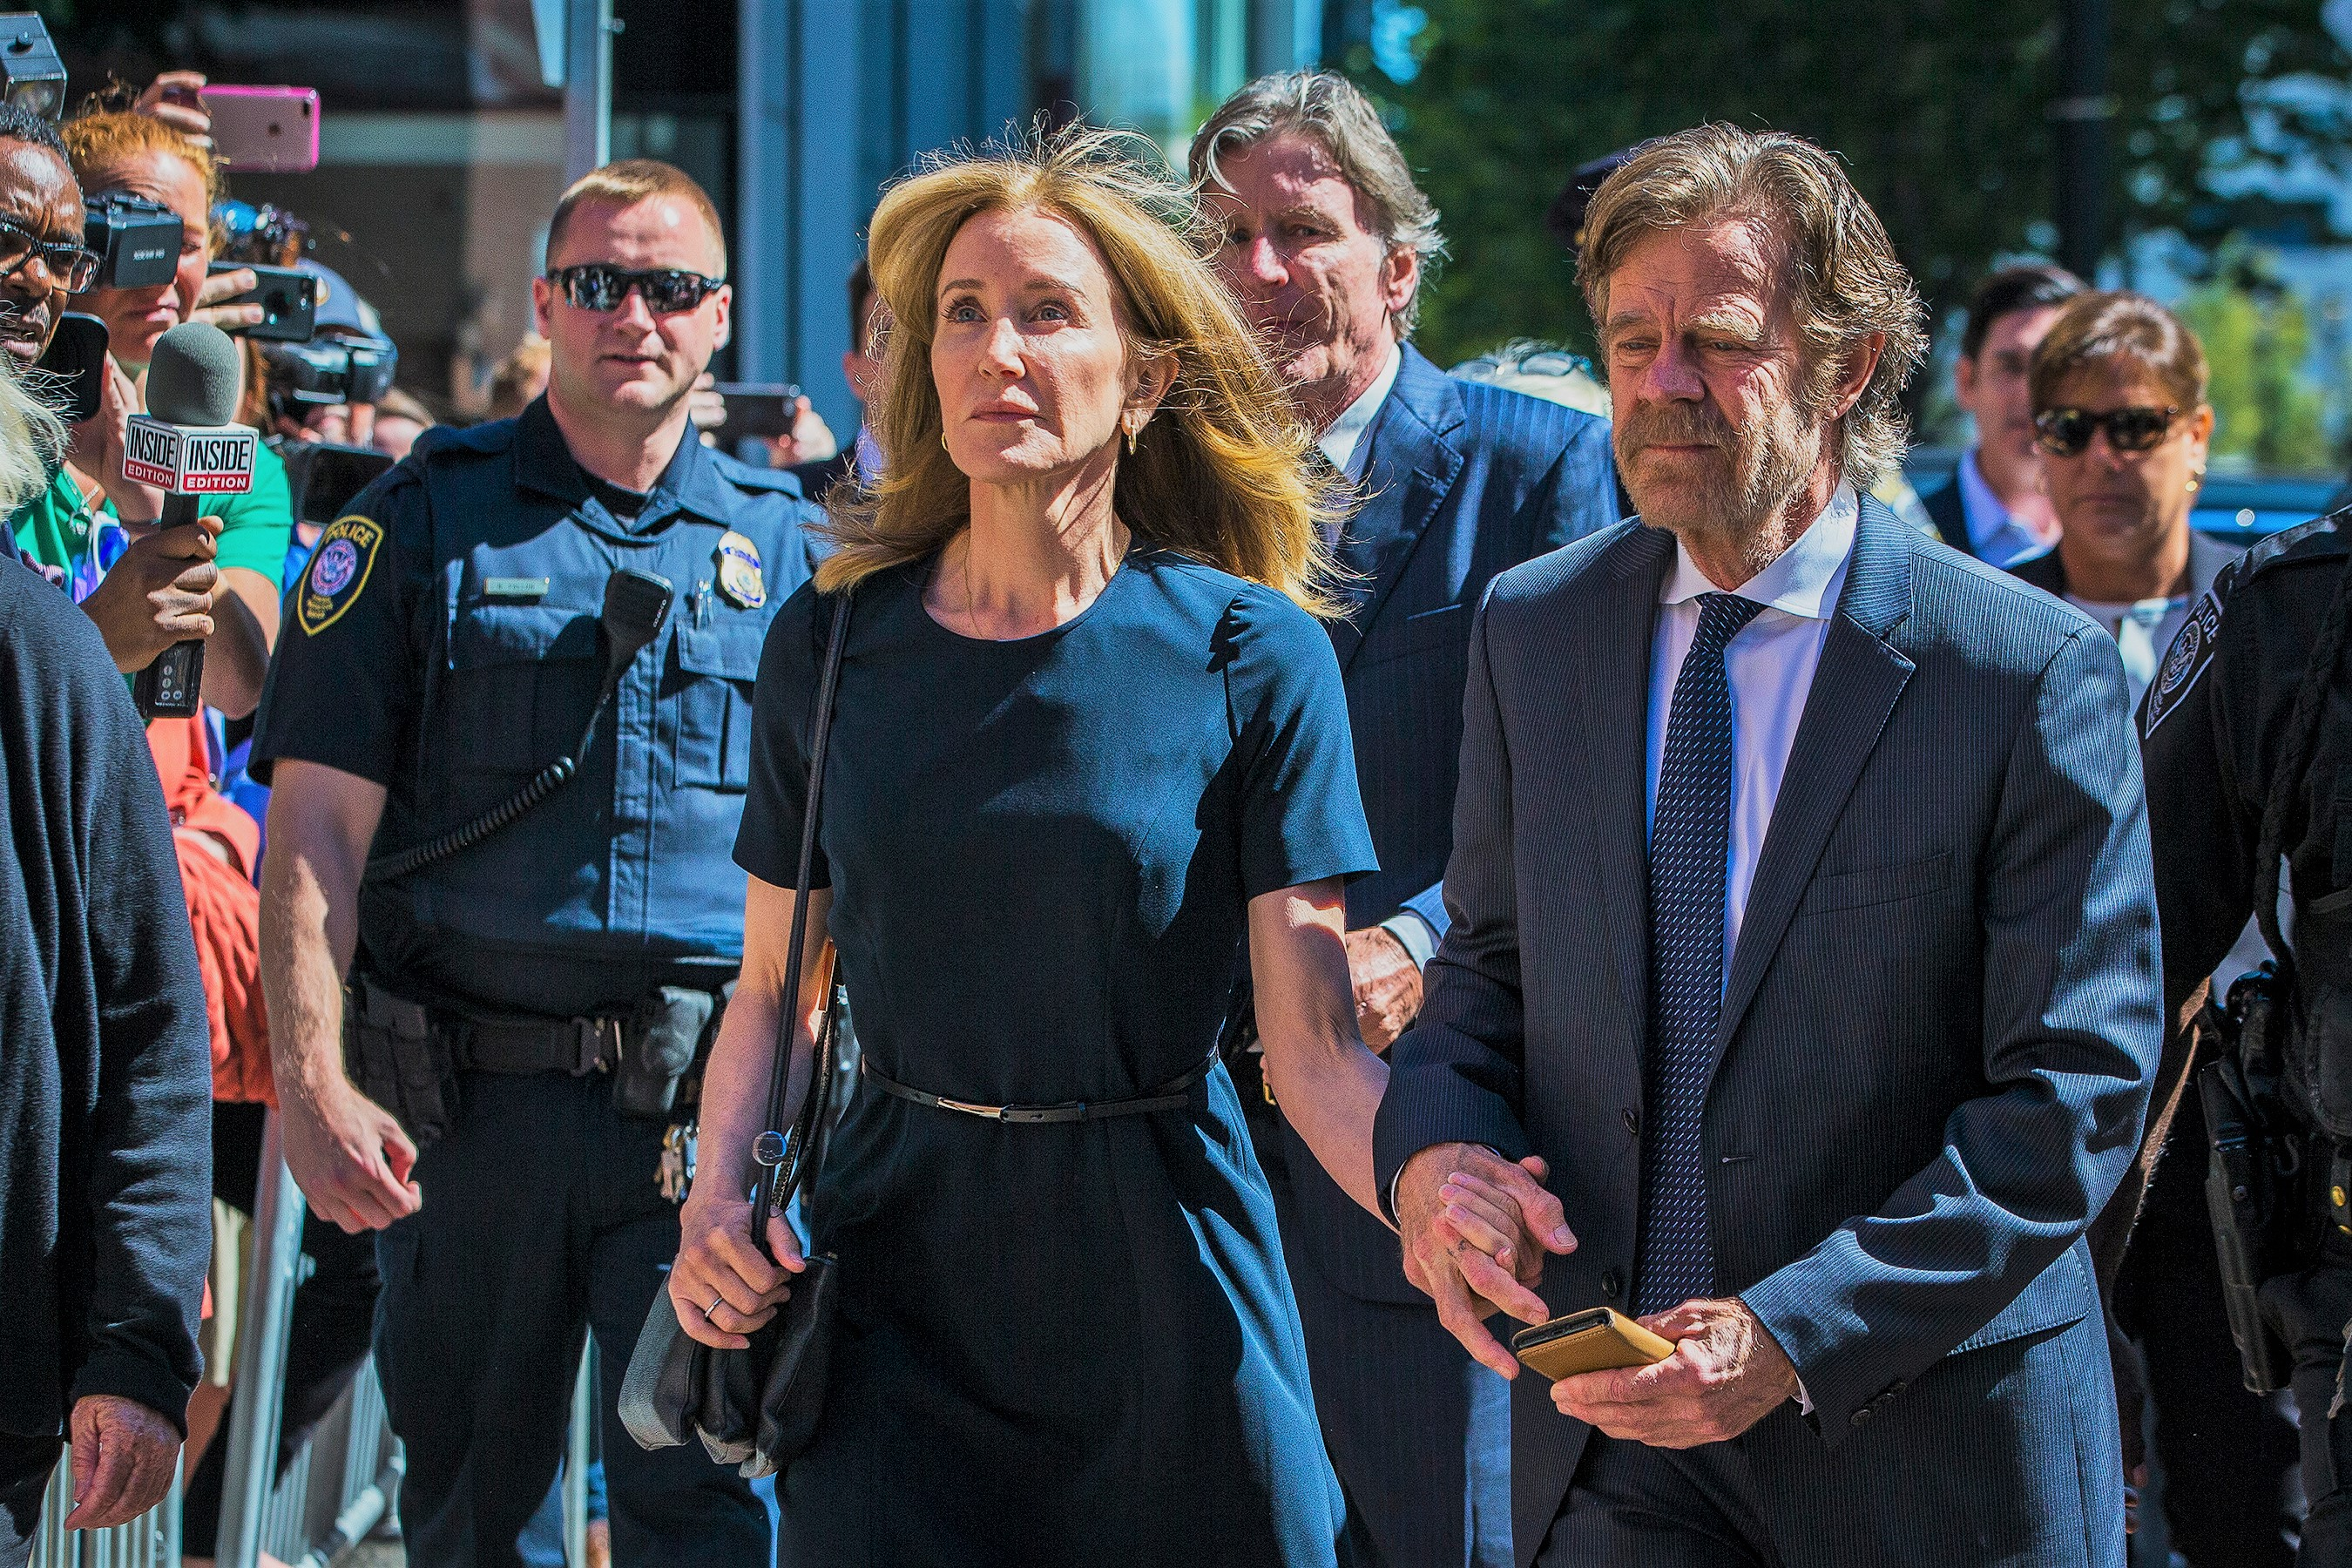 Felicity Huffman Sentenced to 14 Days Behind Bars in College Admissions Scam